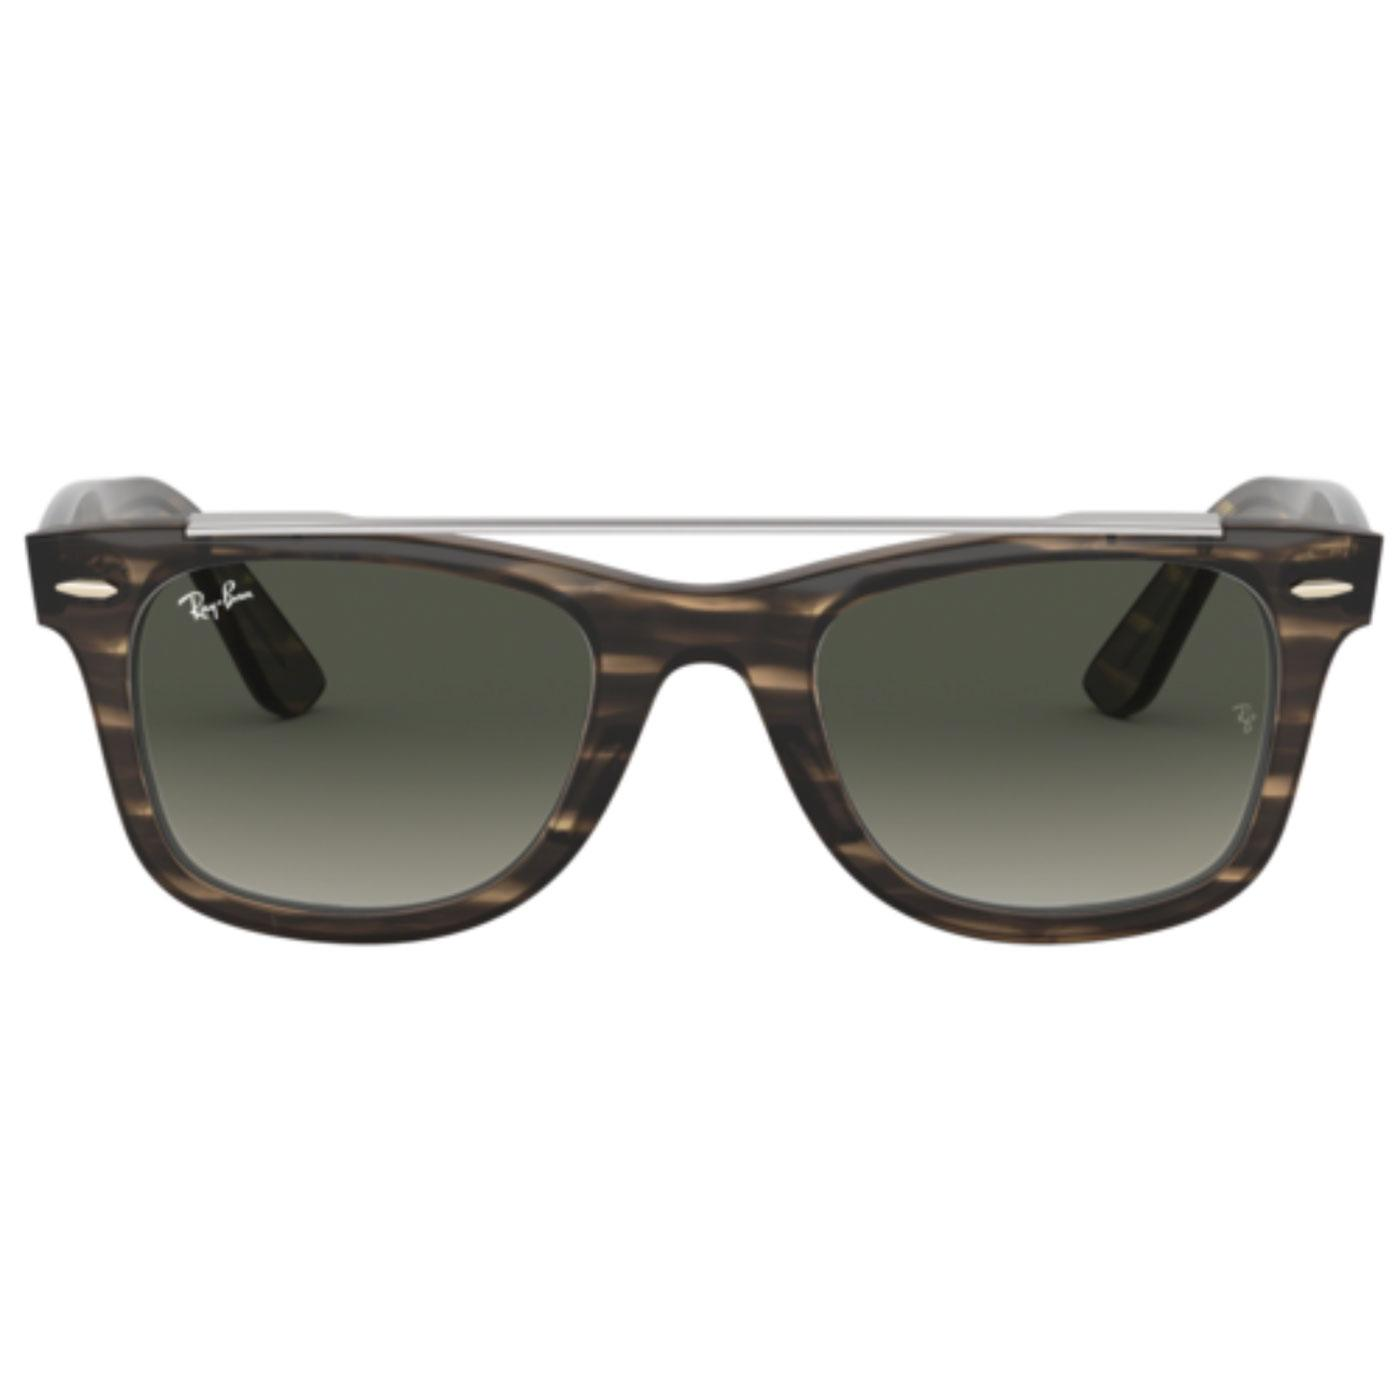 RAY-BAN Stripped Brow Bar Wayfarer Sunglasses (Br)